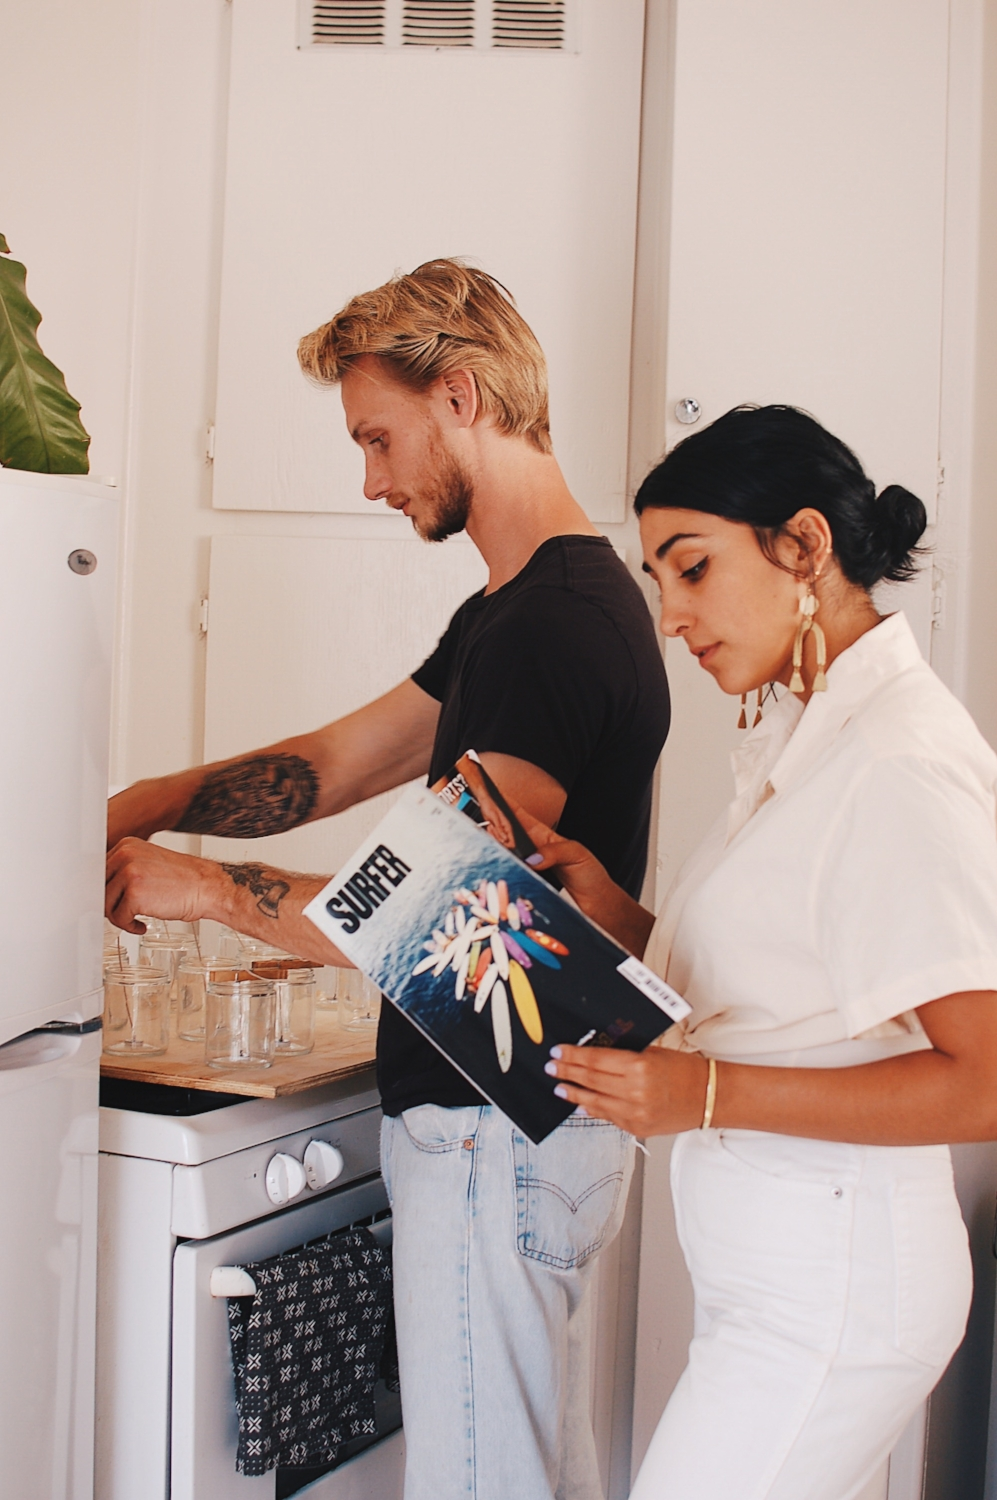 Jared Brainerd and Jasmine Bouzaglou, founders of Jade and Juniper Goods, in their Culver City kitchen.